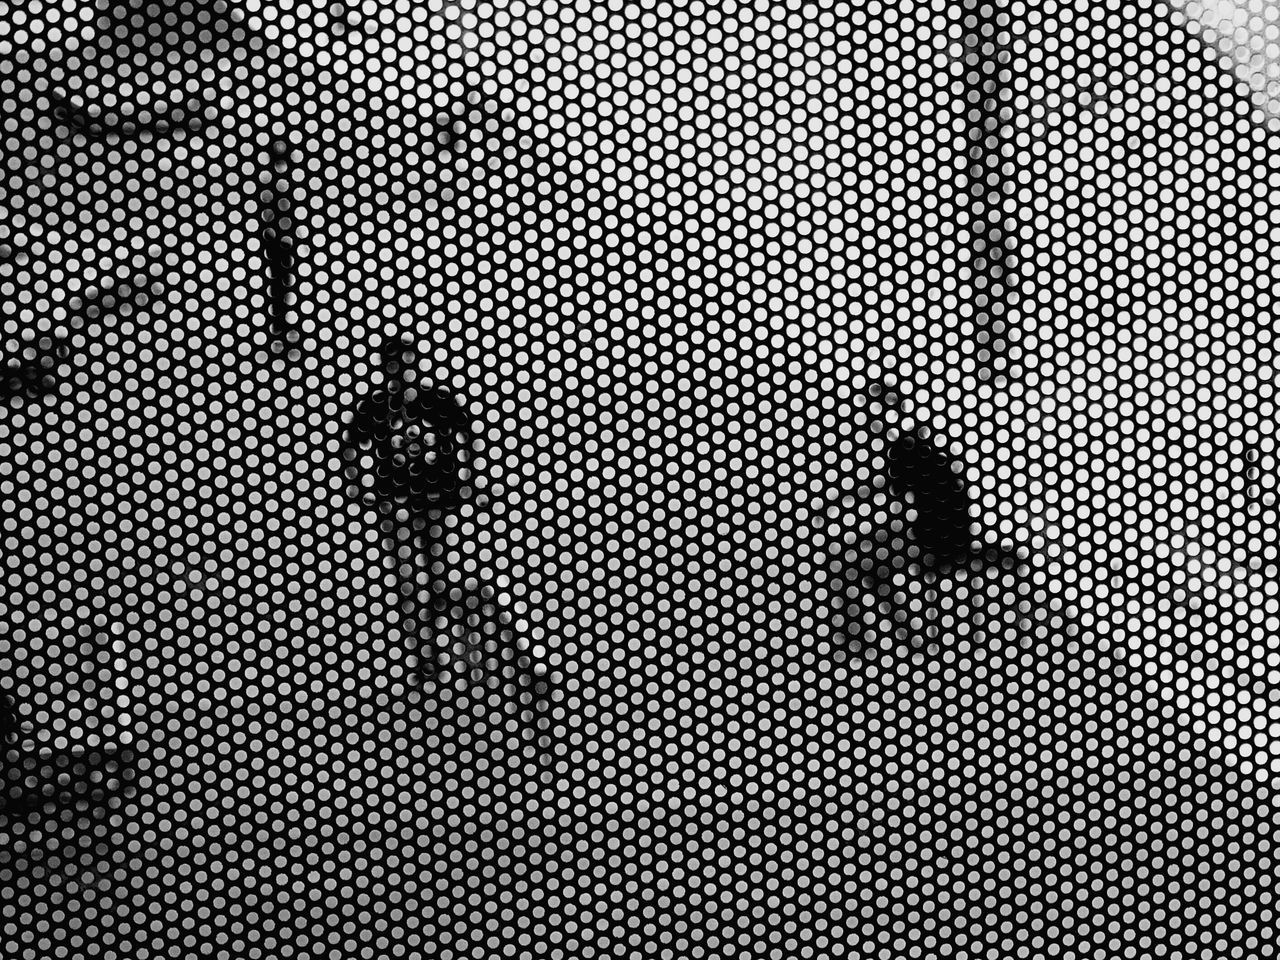 Real People Pattern Full Frame Day Backgrounds Architecture Men Outdoors One Person People Perspective Photo Of The Day Photooftheday Perception Is Reality Skate Park Building Street Portrait Arts Culture And Entertainment SONY DSC-HX400V EyeEm Gallery Black And White Collection  Blac&white  EyeEm Bnw Monochrome Photography Monochrome _ Collection Bnw_planet BYOPaper!